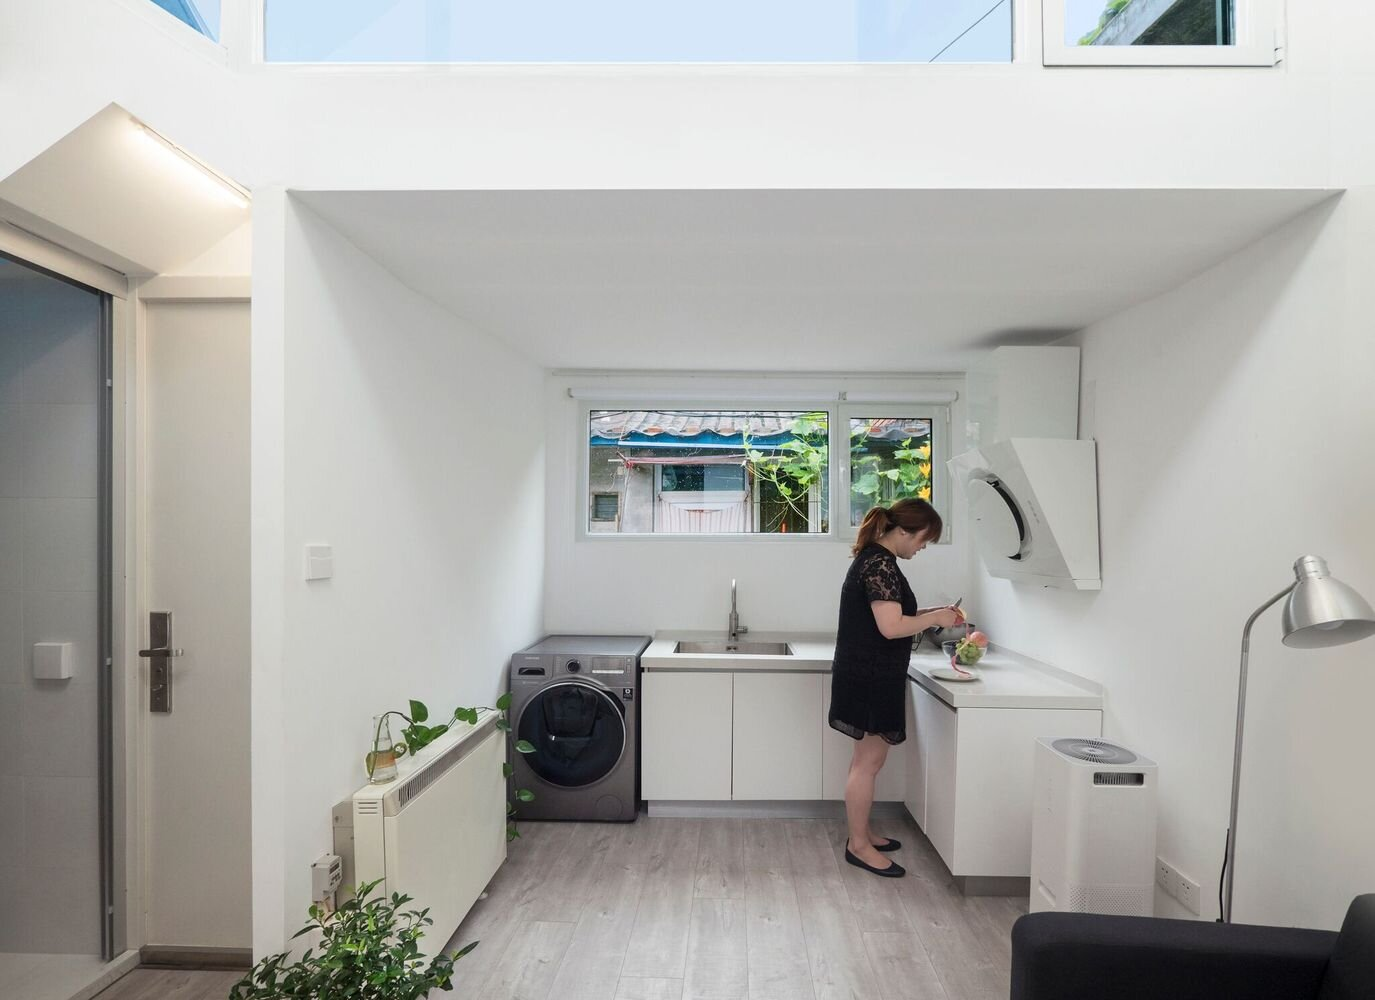 mrs-fans-plugin-house-peoples-architecture-office-beijing-china-kitchen-humble-homes